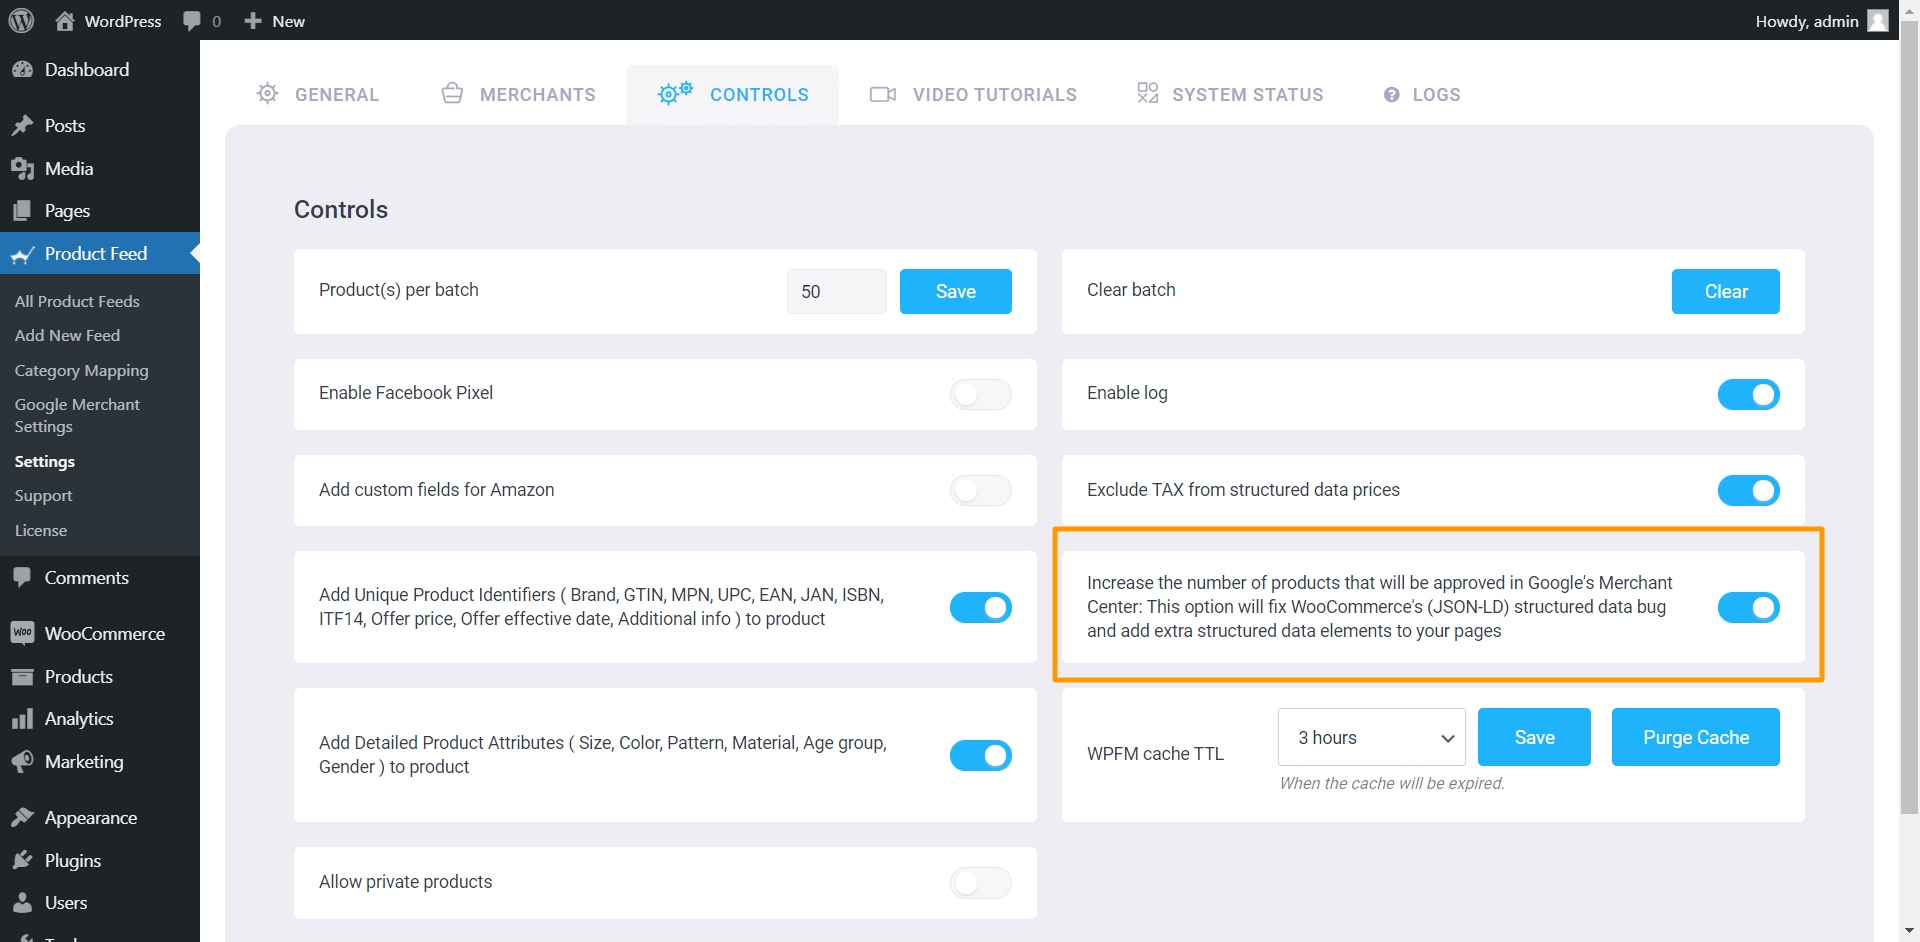 Product Feed Manager Controls - Fix WooCommerce's (JSON-LD) structured data bug